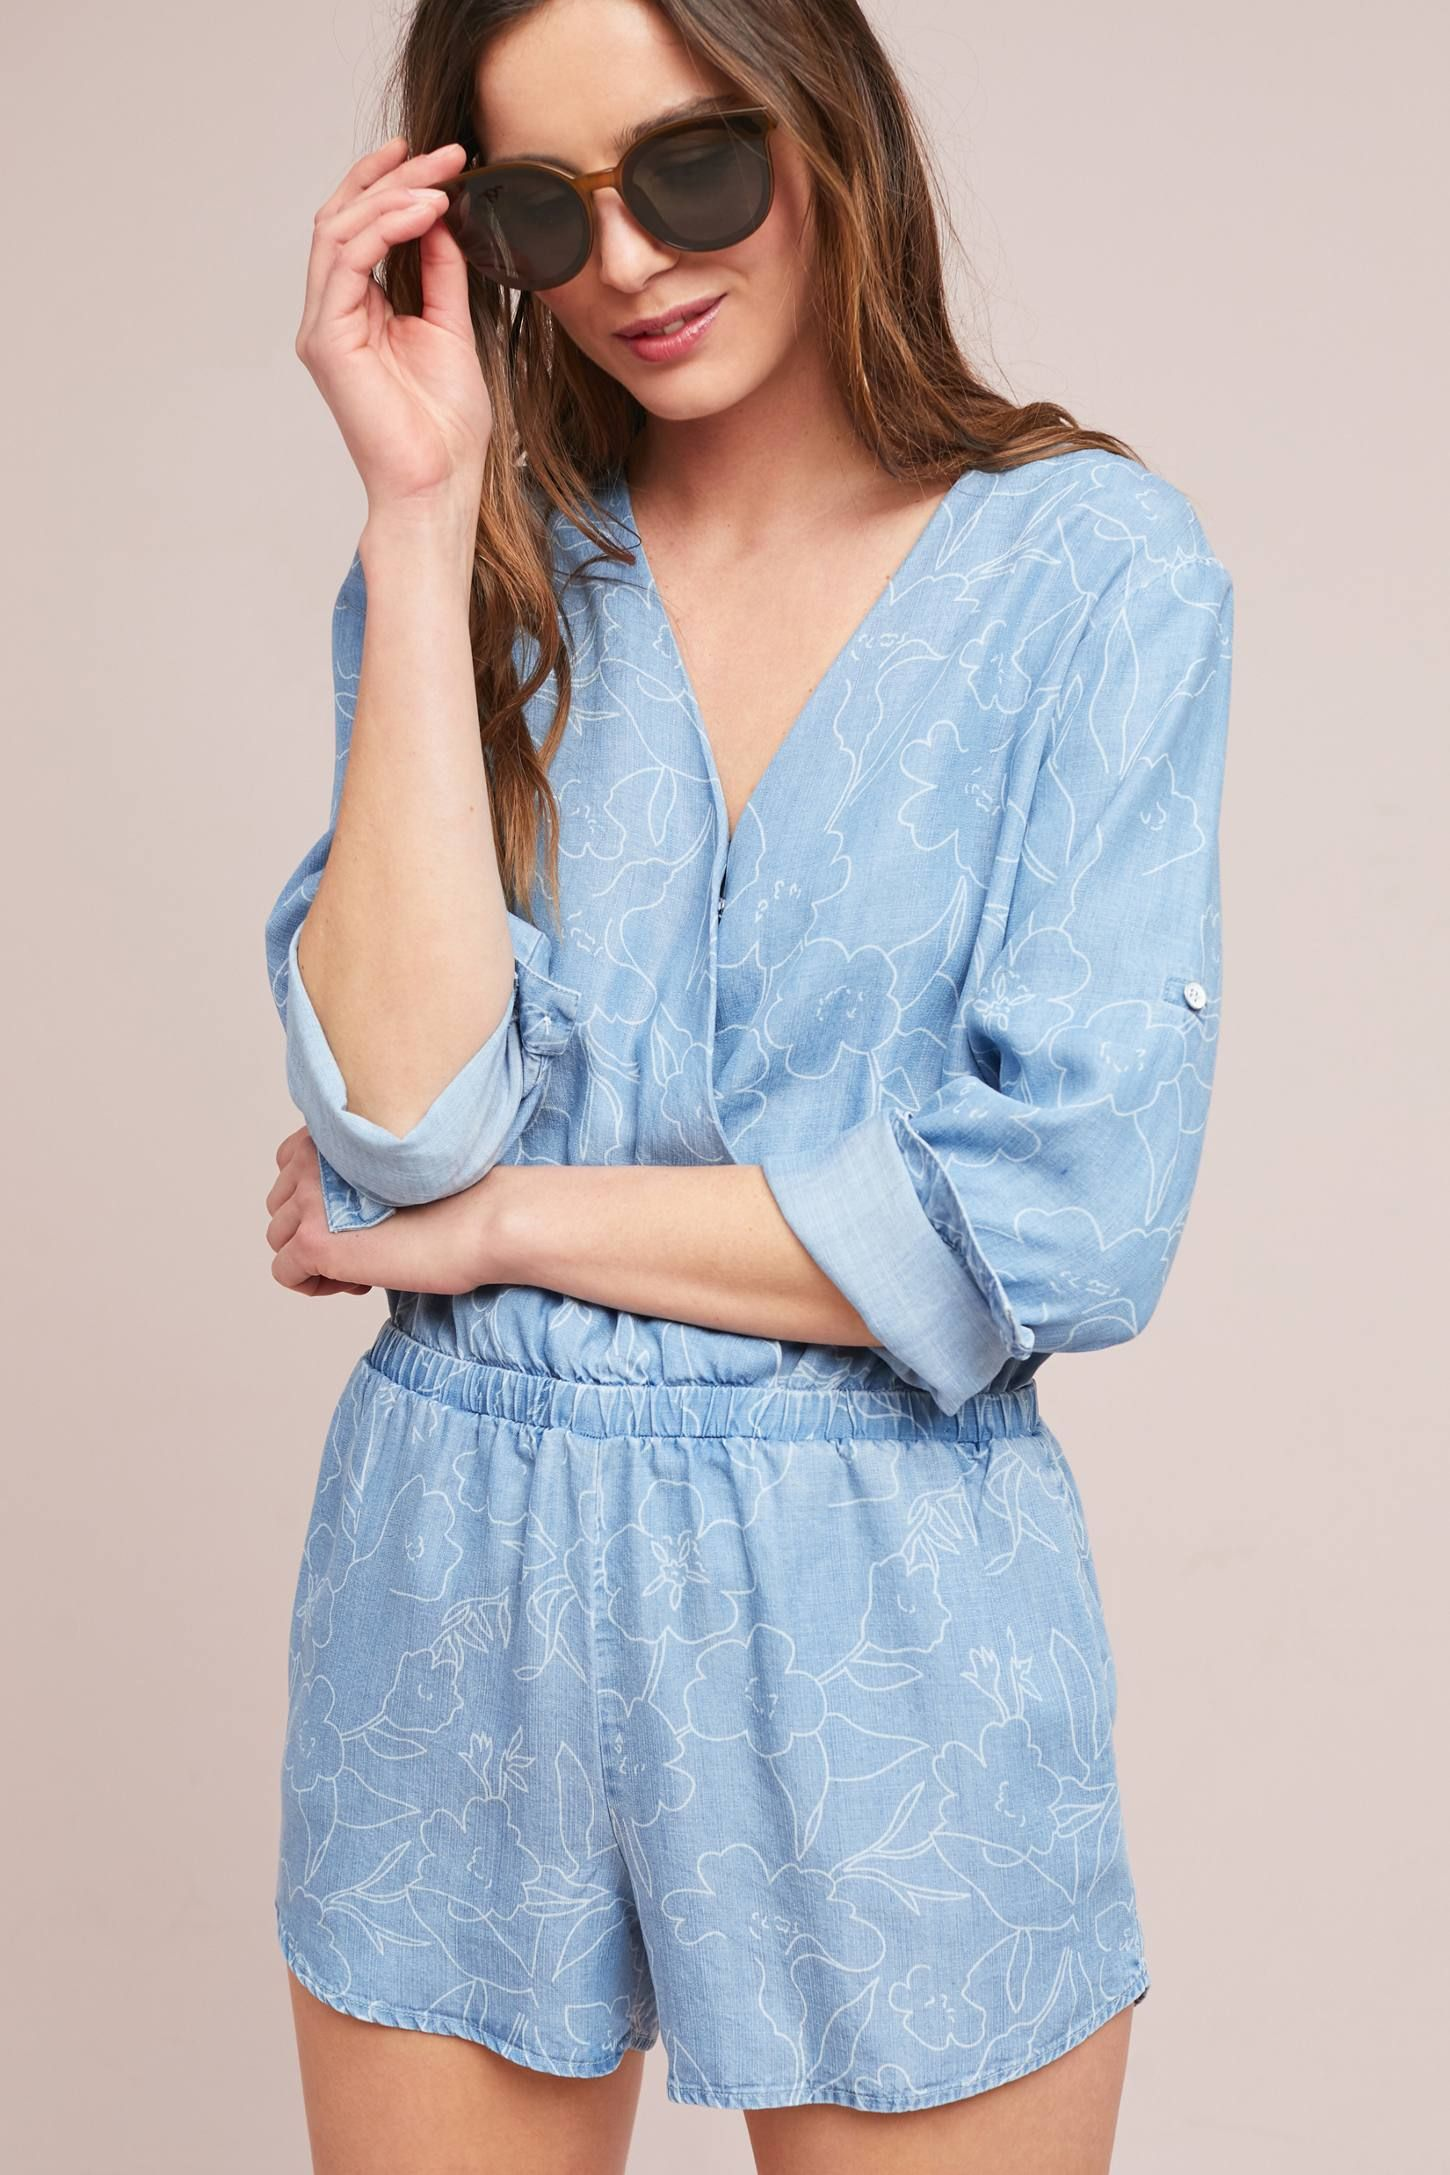 919755d947e6 Shop the Cloth   Stone Chambray Romper and more Anthropologie at  Anthropologie today. Read customer reviews